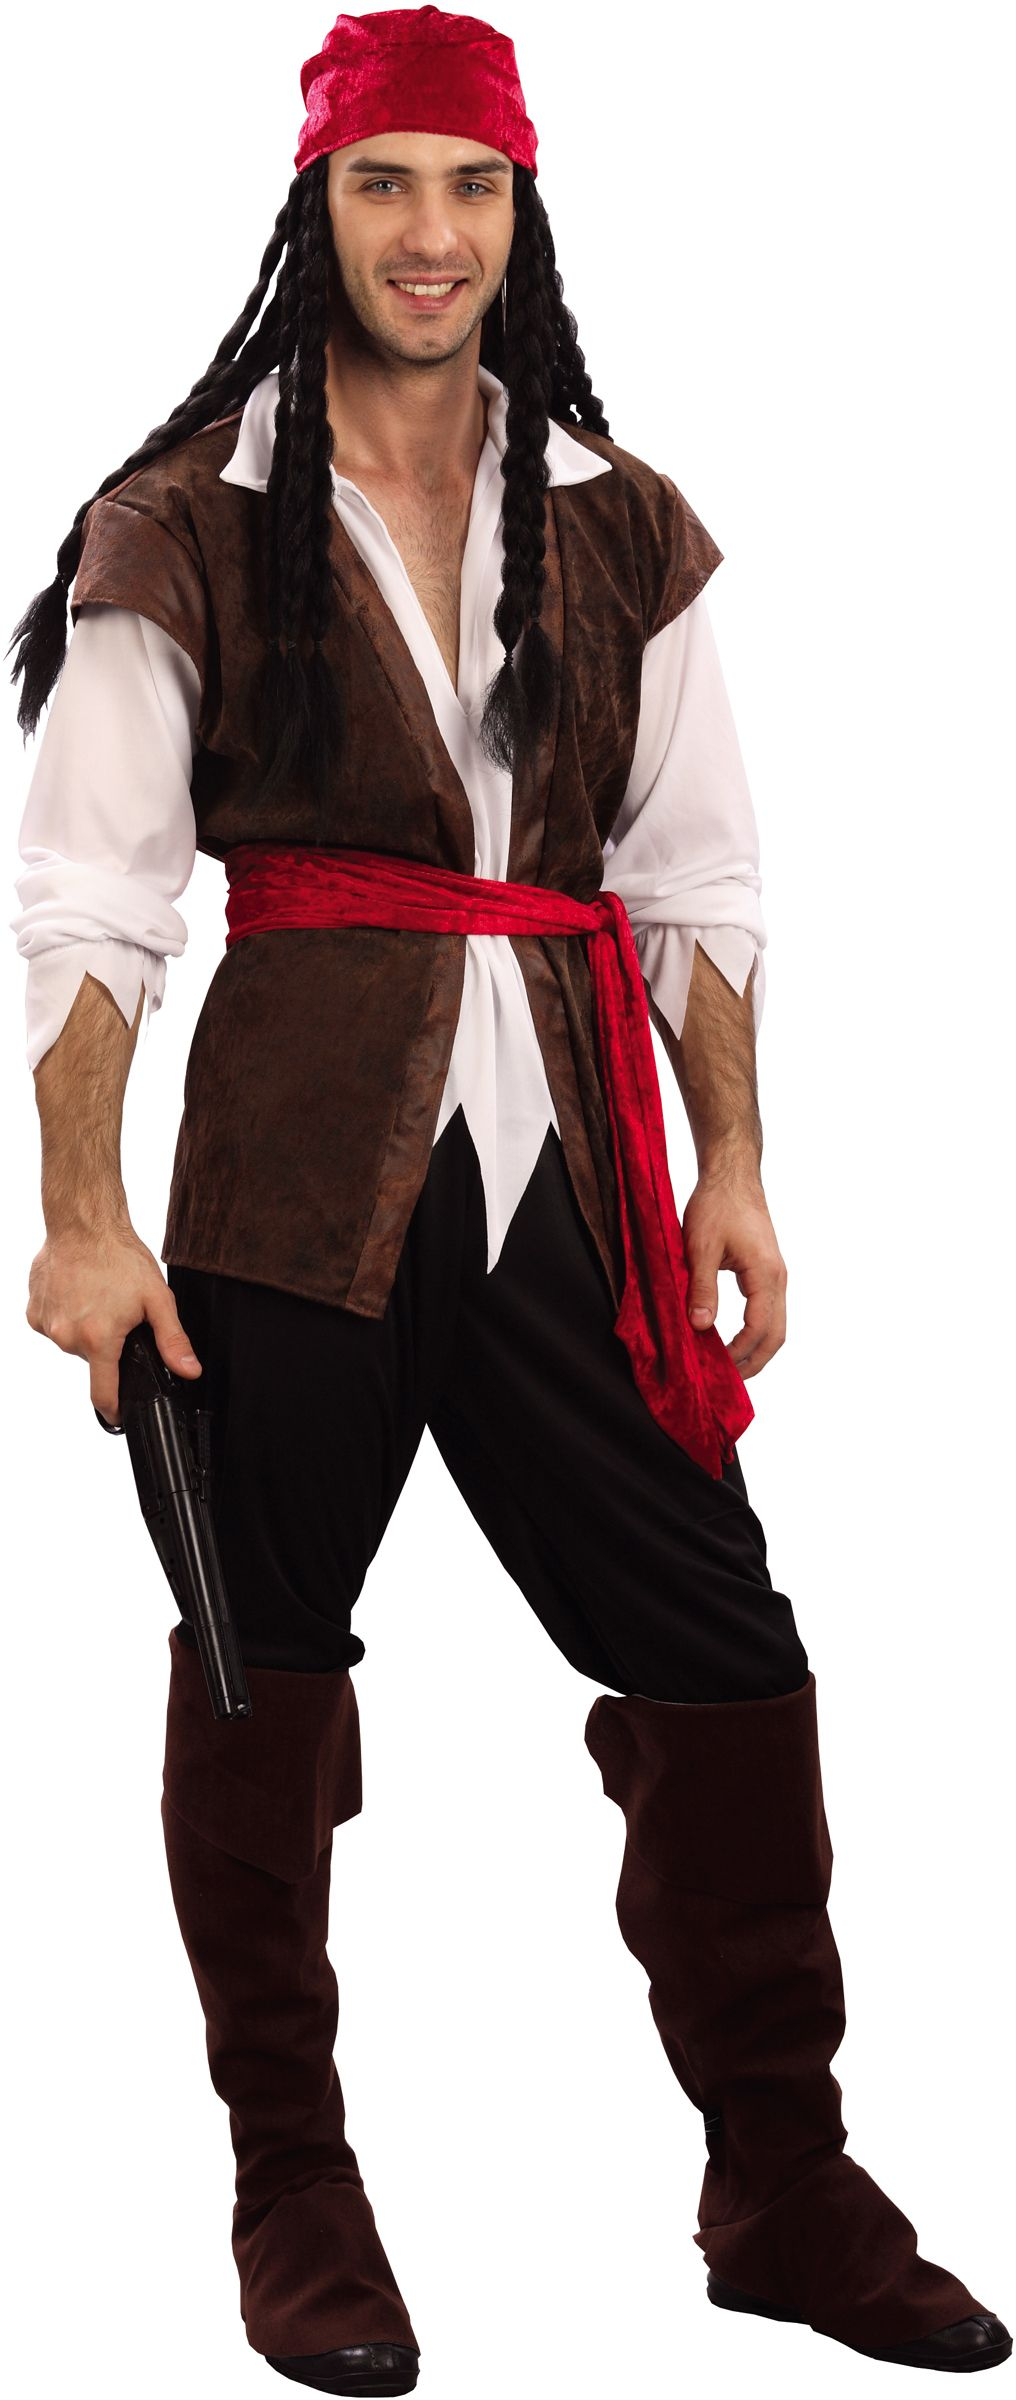 d guisement pirate homme costumes halloween costumes. Black Bedroom Furniture Sets. Home Design Ideas